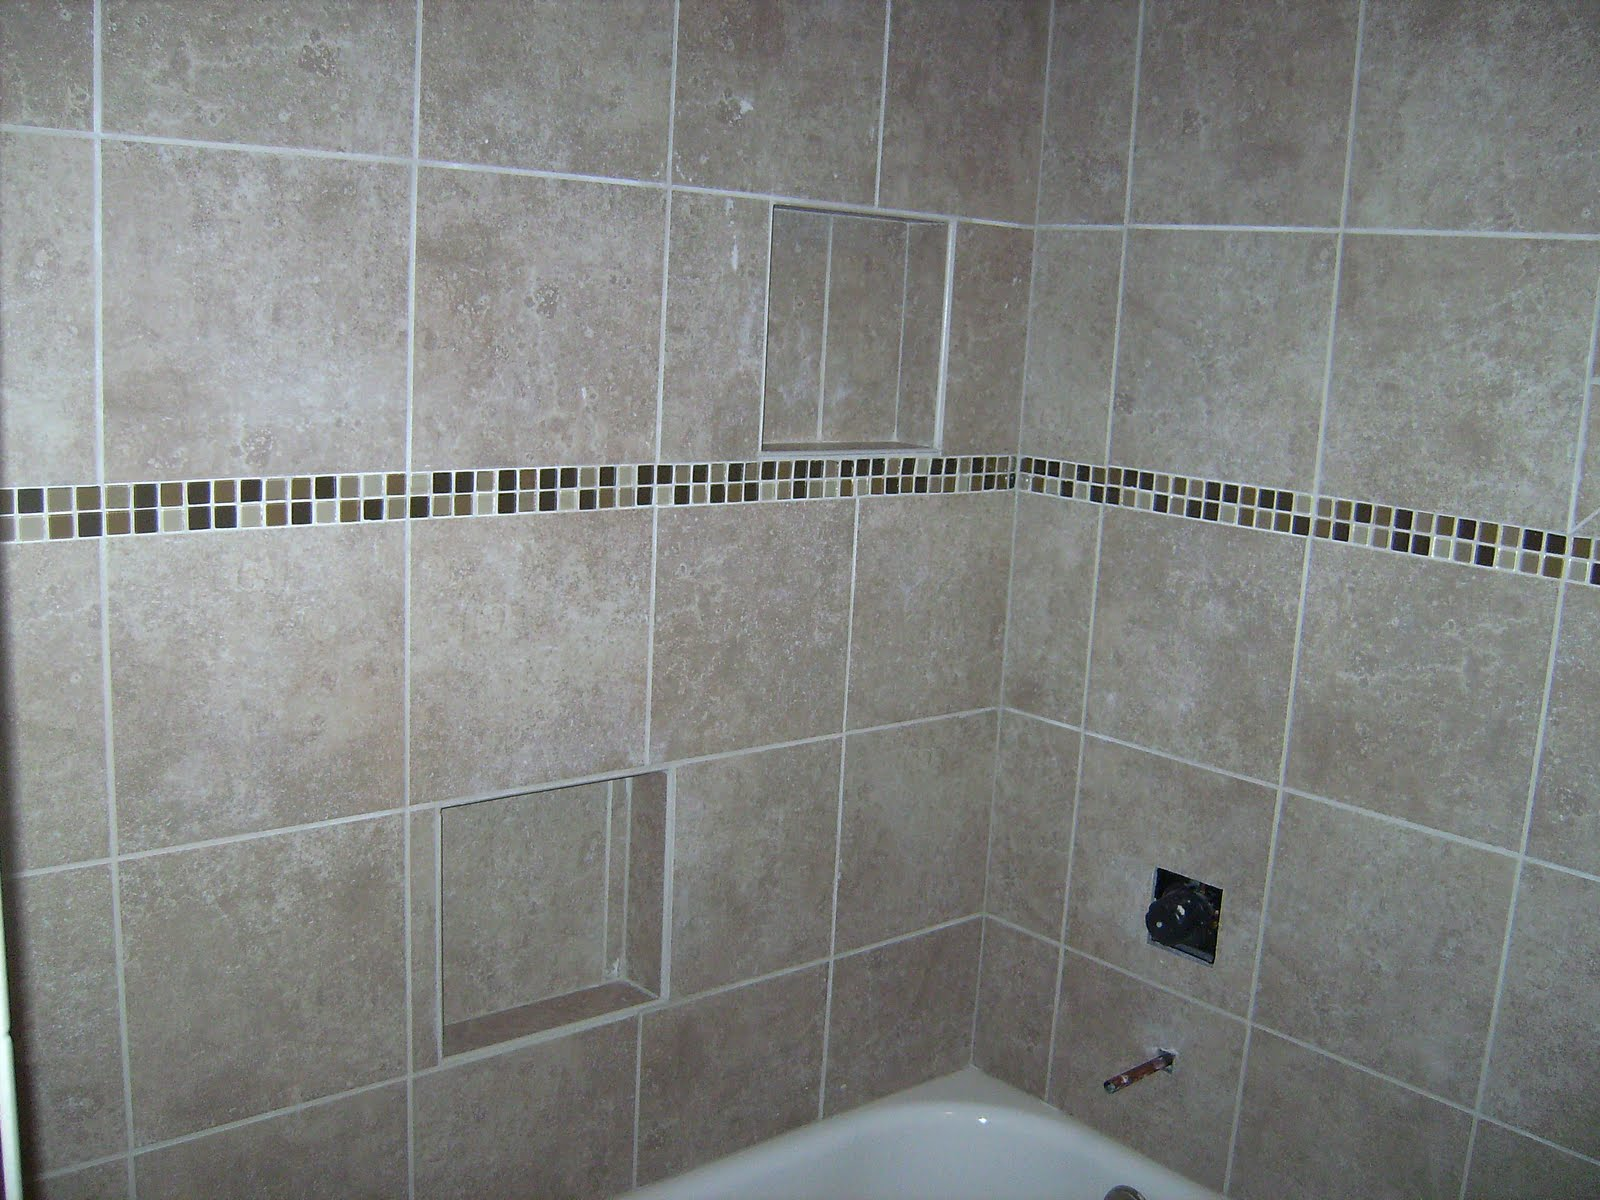 Vinyl tile in bathroom bathroom tile Best tile for shower walls